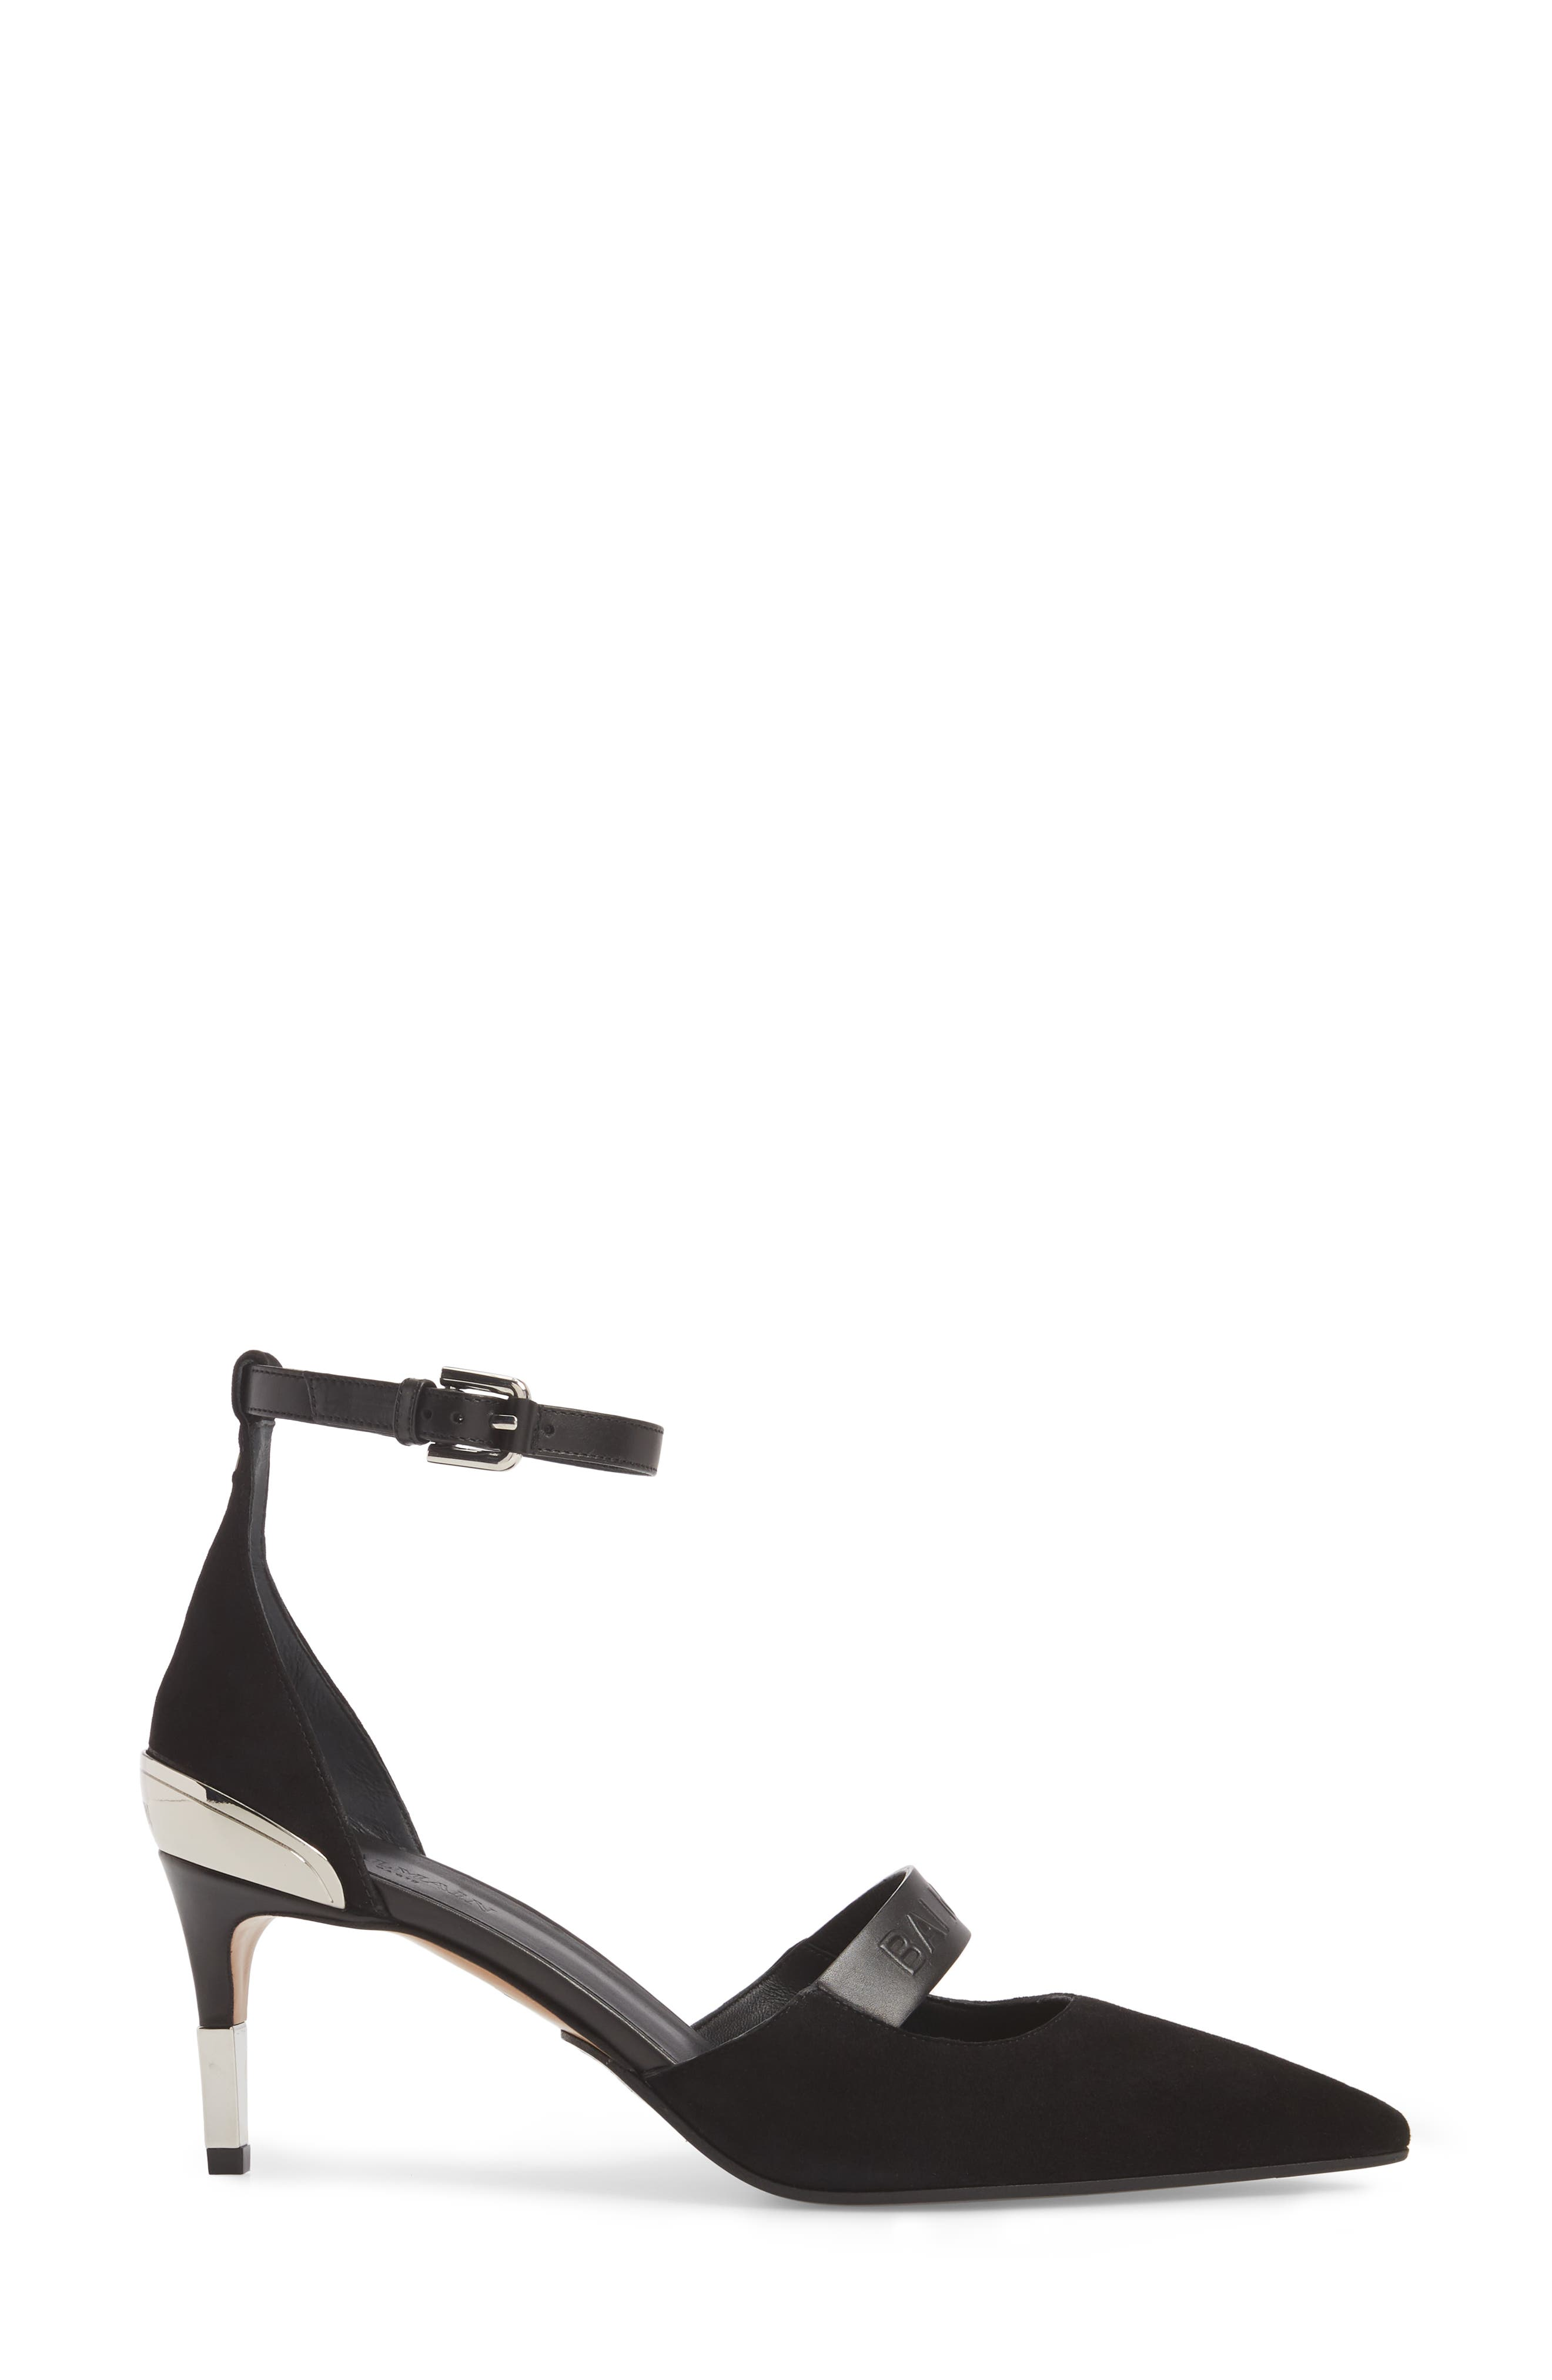 Chance Ankle Strap Pointy Toe Pump,                             Alternate thumbnail 3, color,                             001